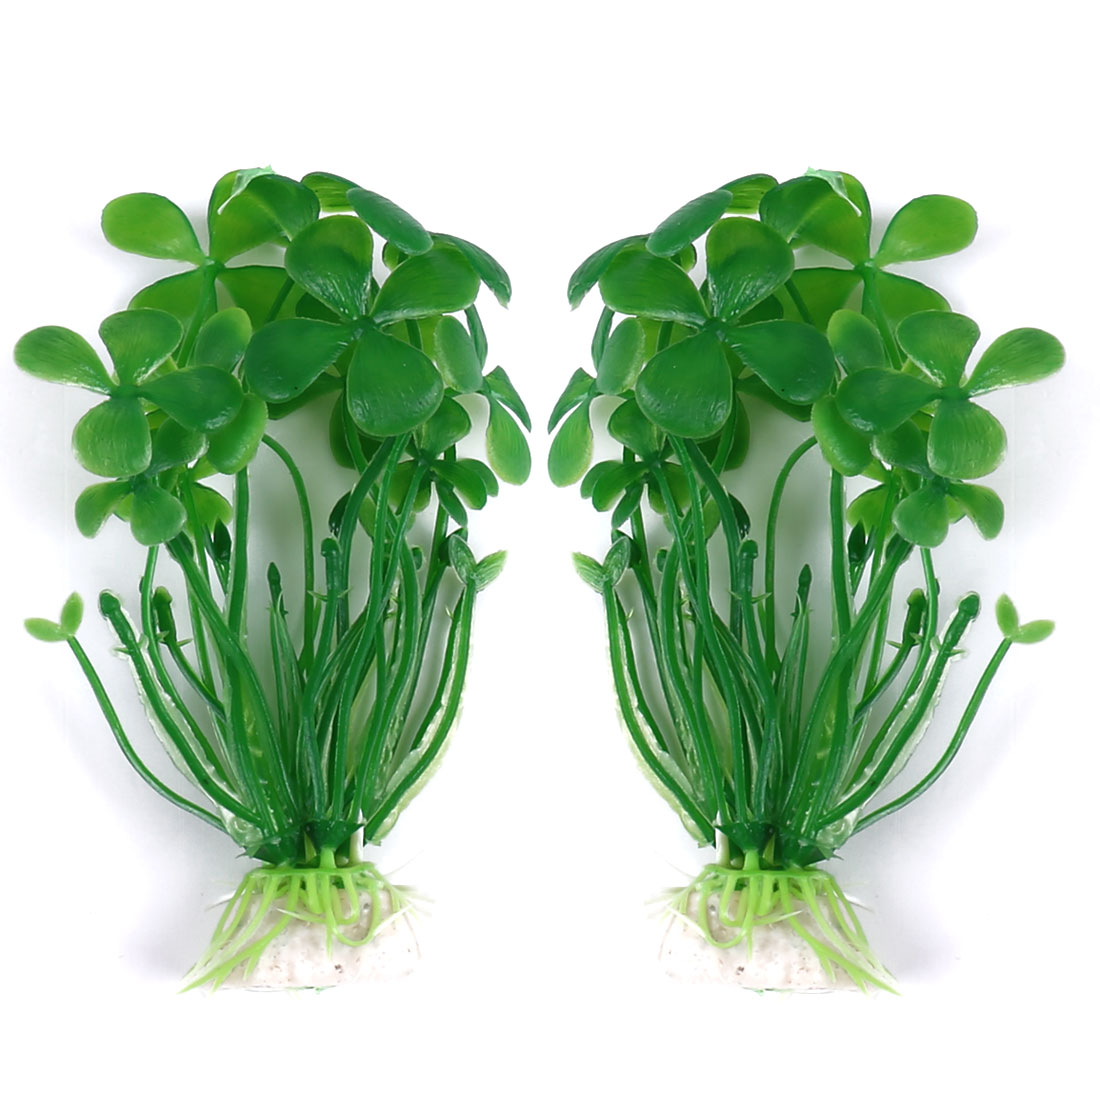 "2 Pcs Aquarium Tank 3.9"" Height Green Plastic Aquatic Plant Grass"